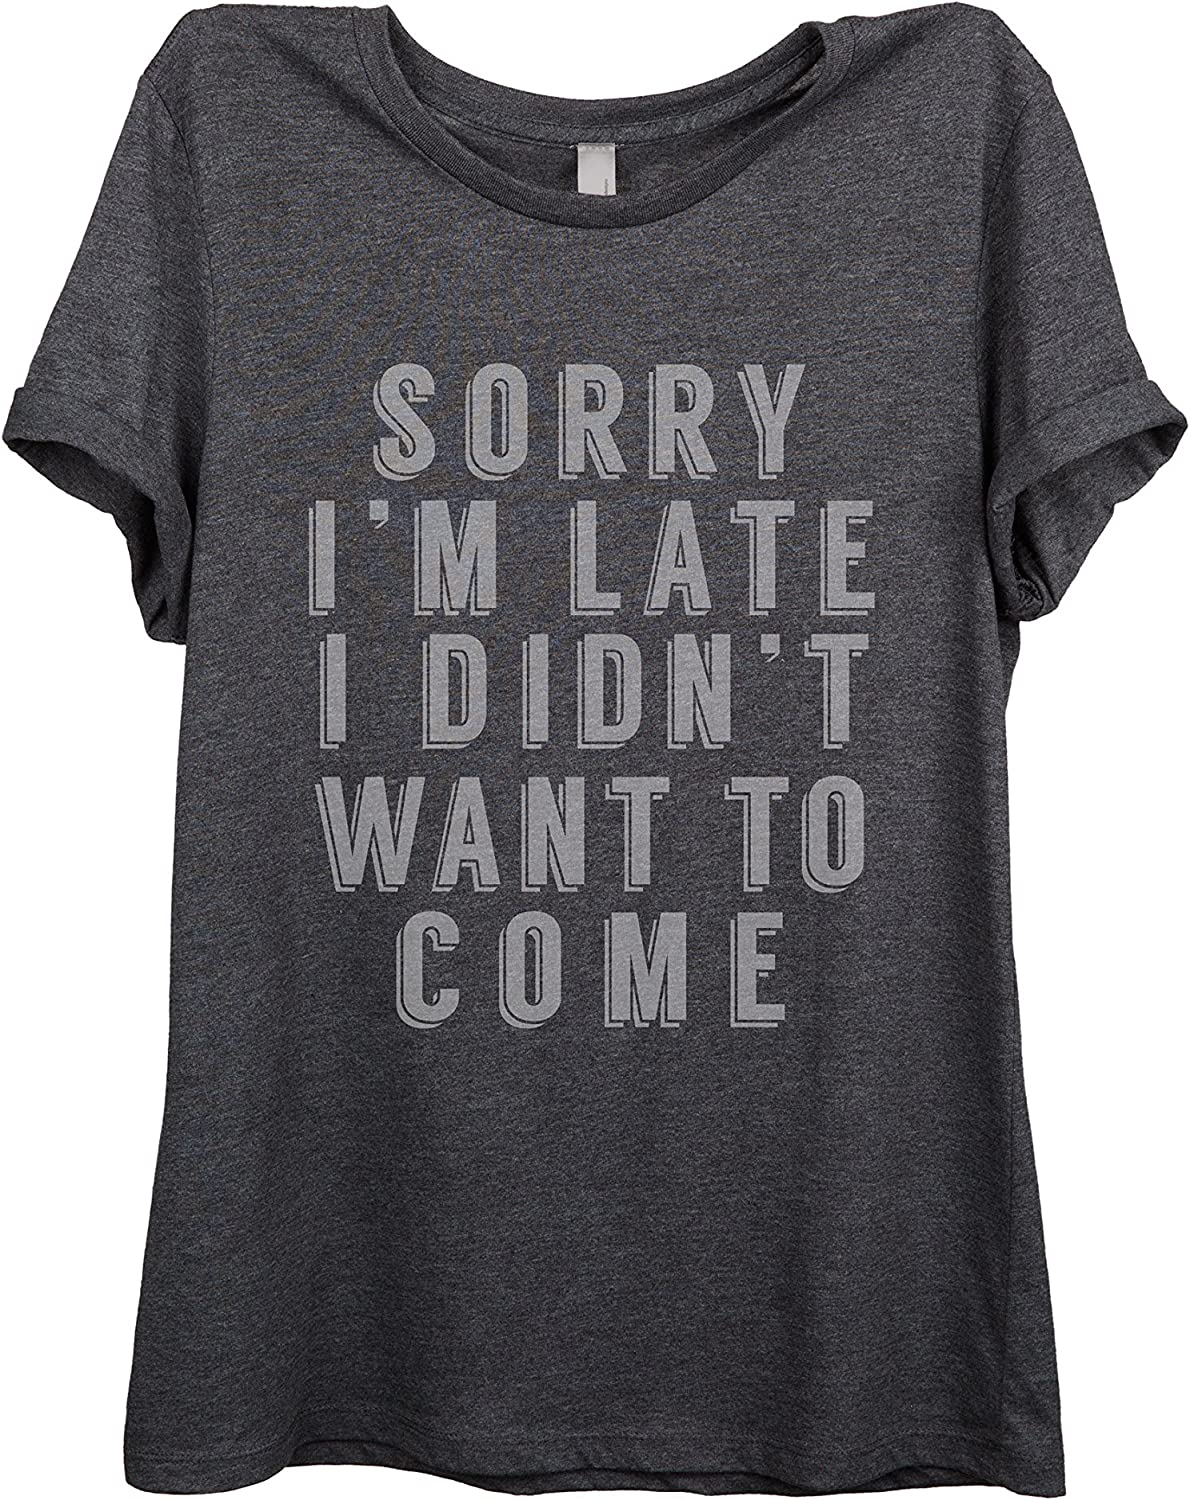 Sorry I Didn't Want To Come Women Relaxed TShirt Tee Charcoal Grey